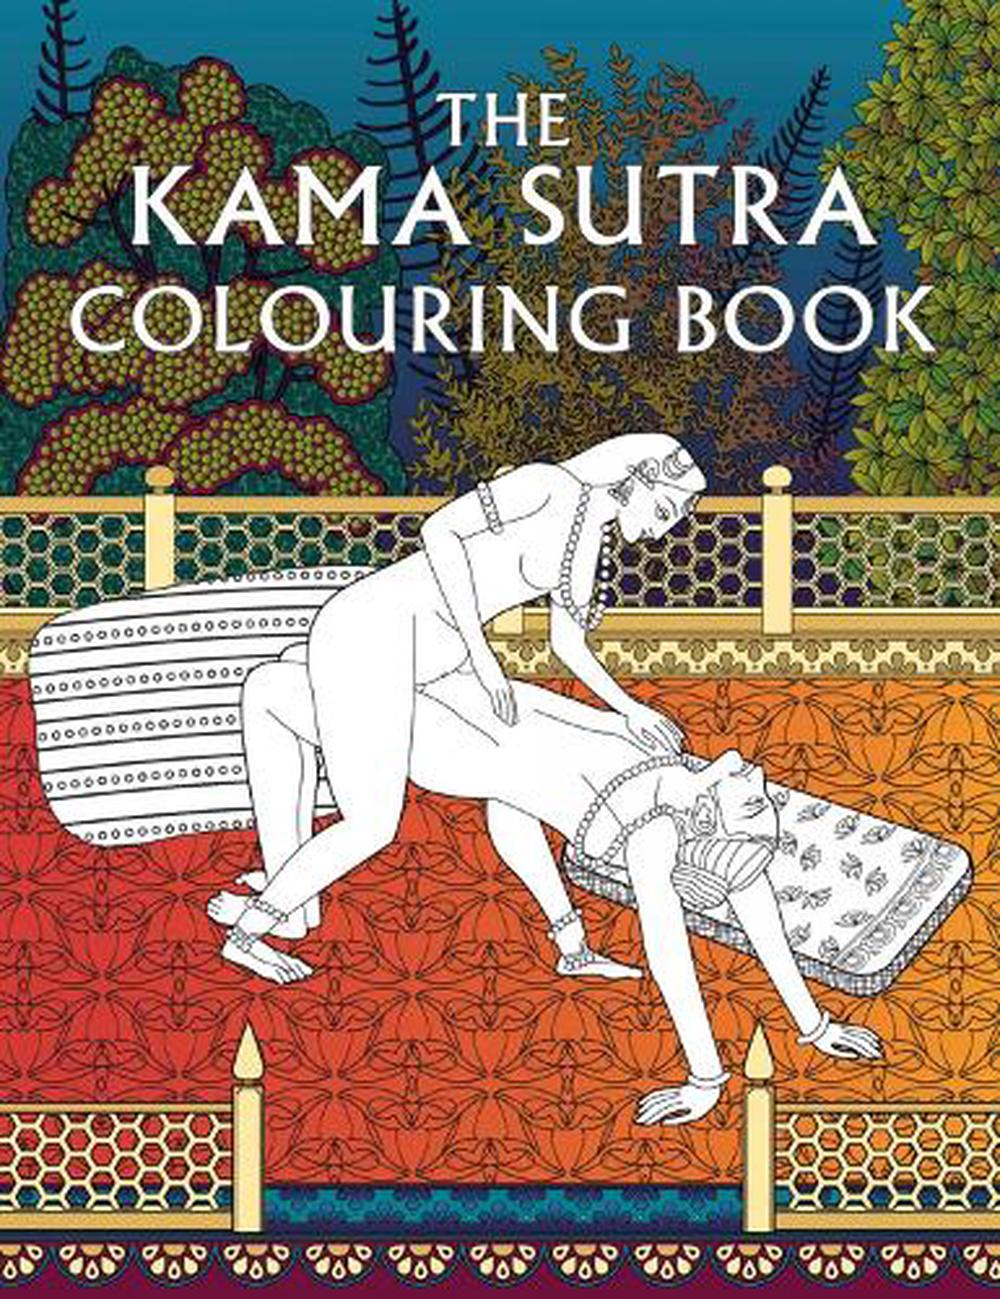 Kama Sutra Colouring Book